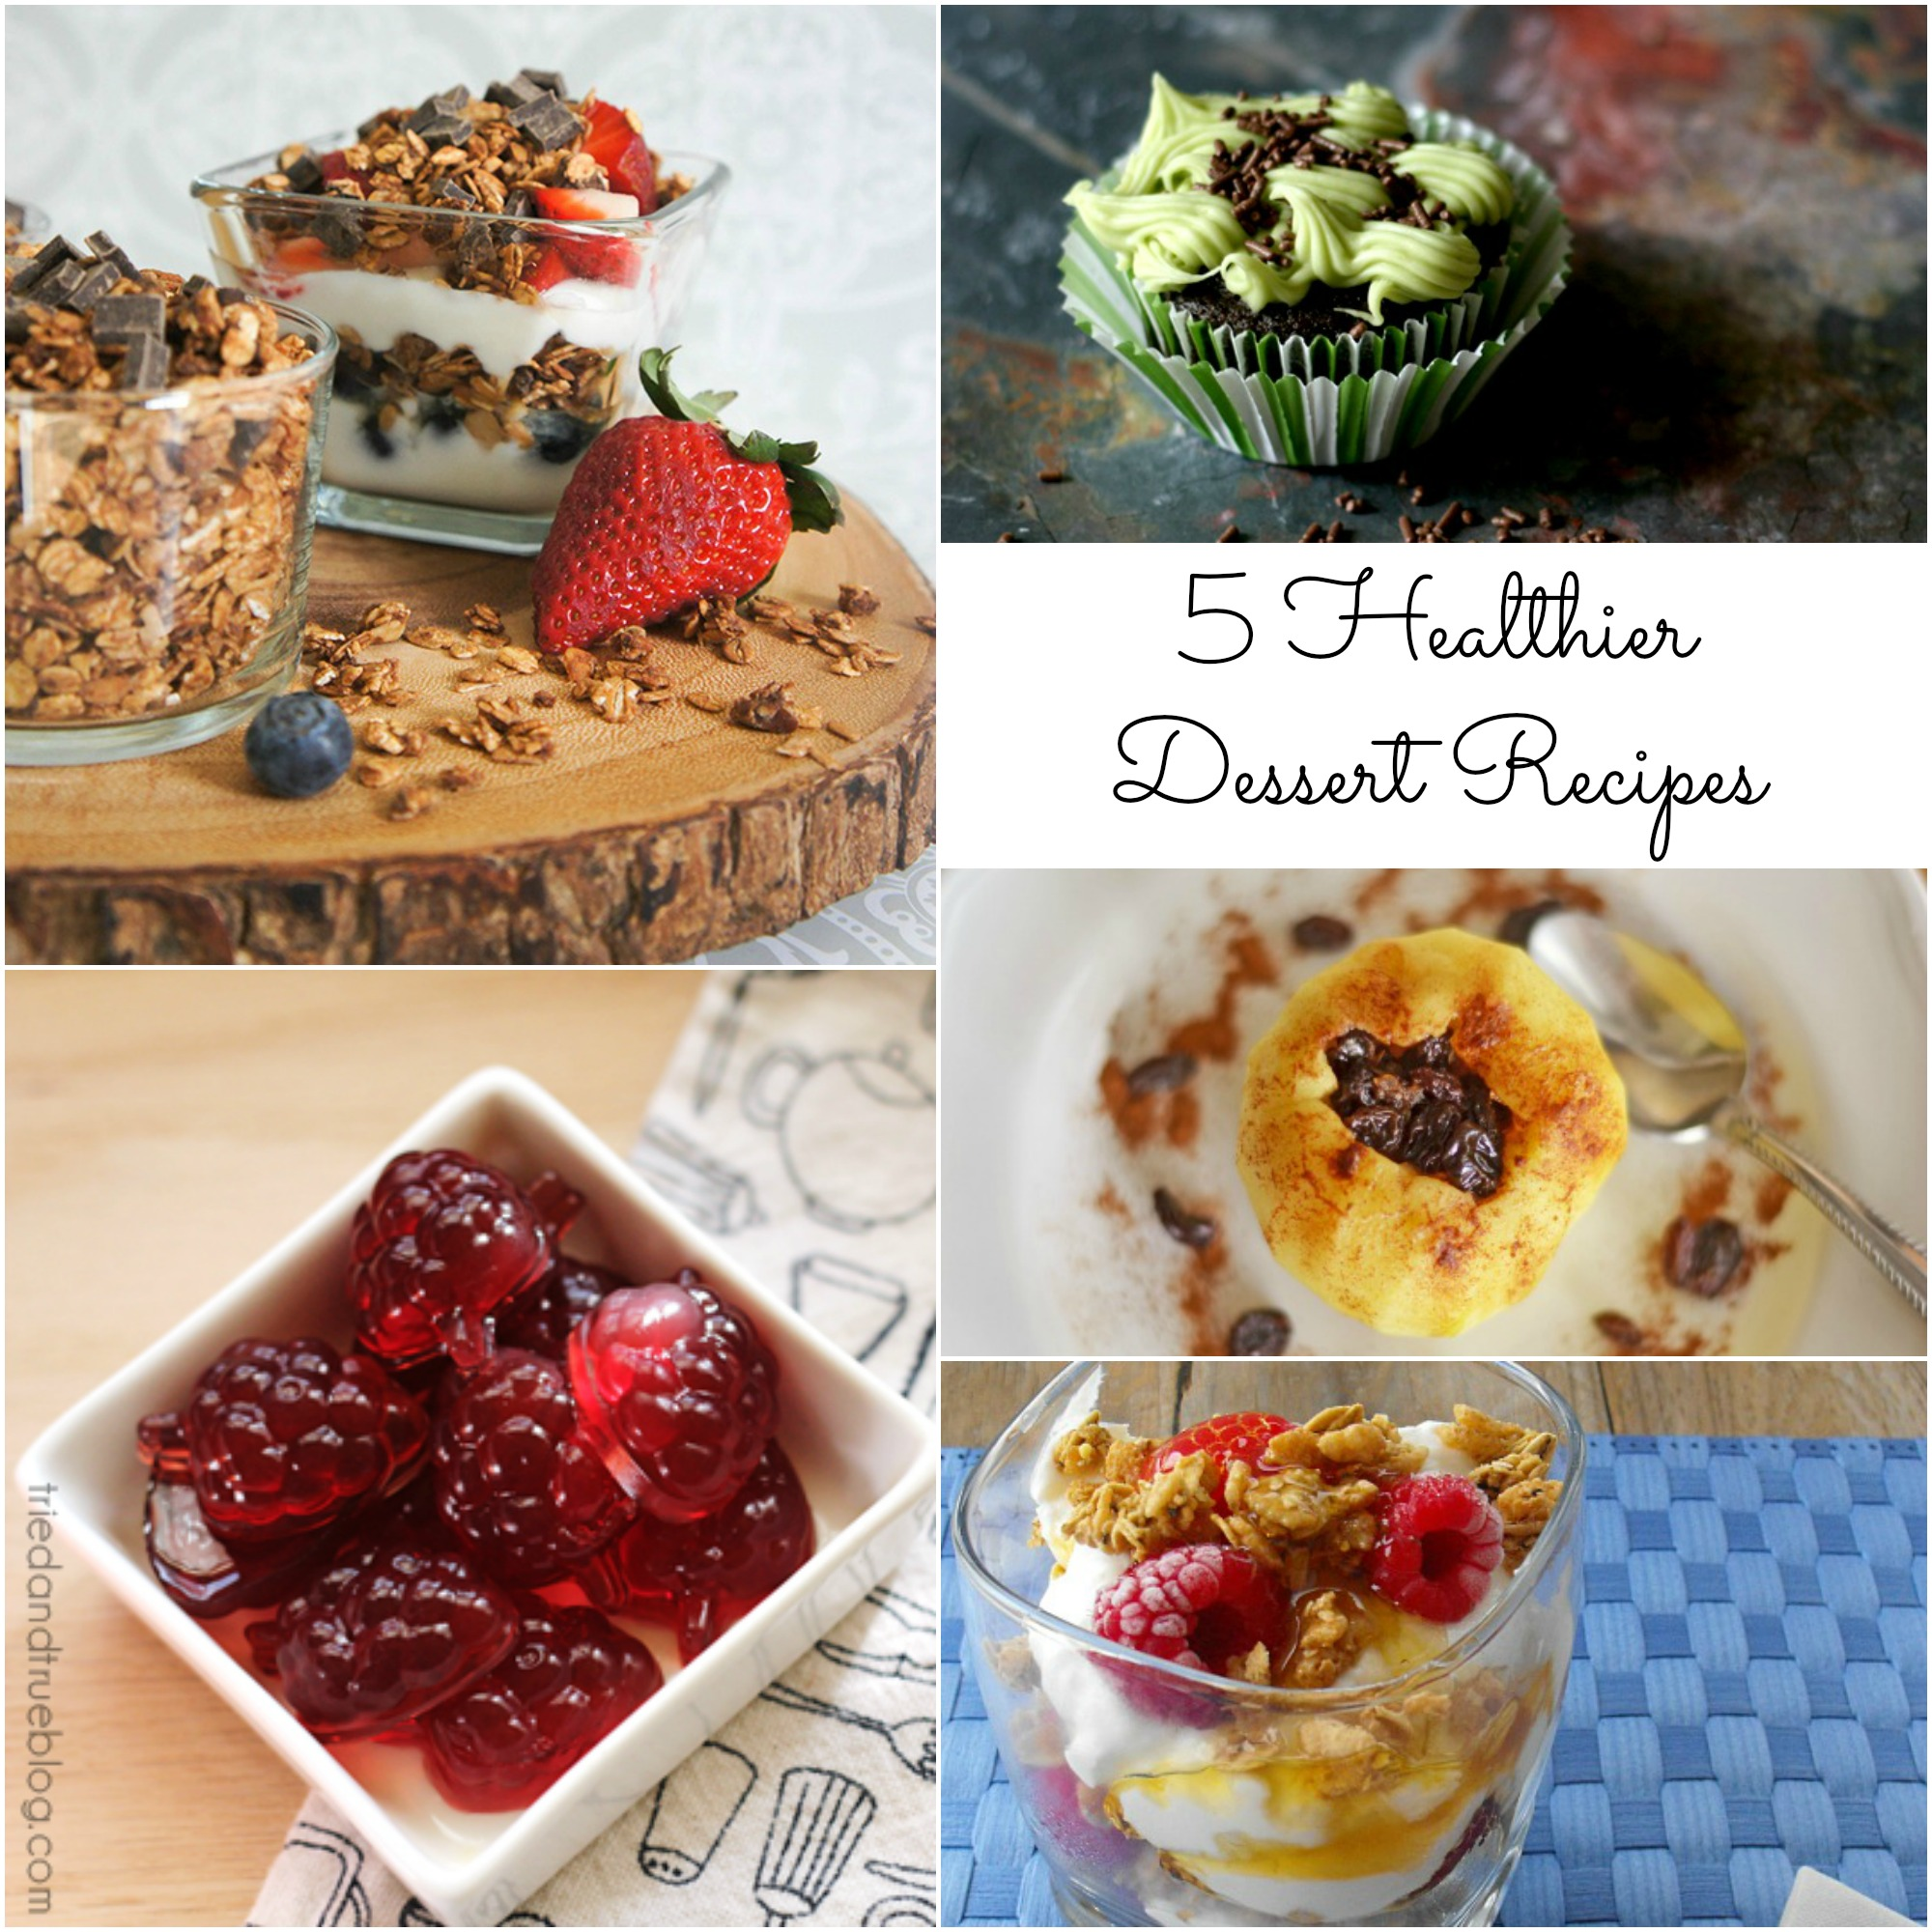 healthier desserts, dessert recipes, fruit snacks, cupcakes, granola